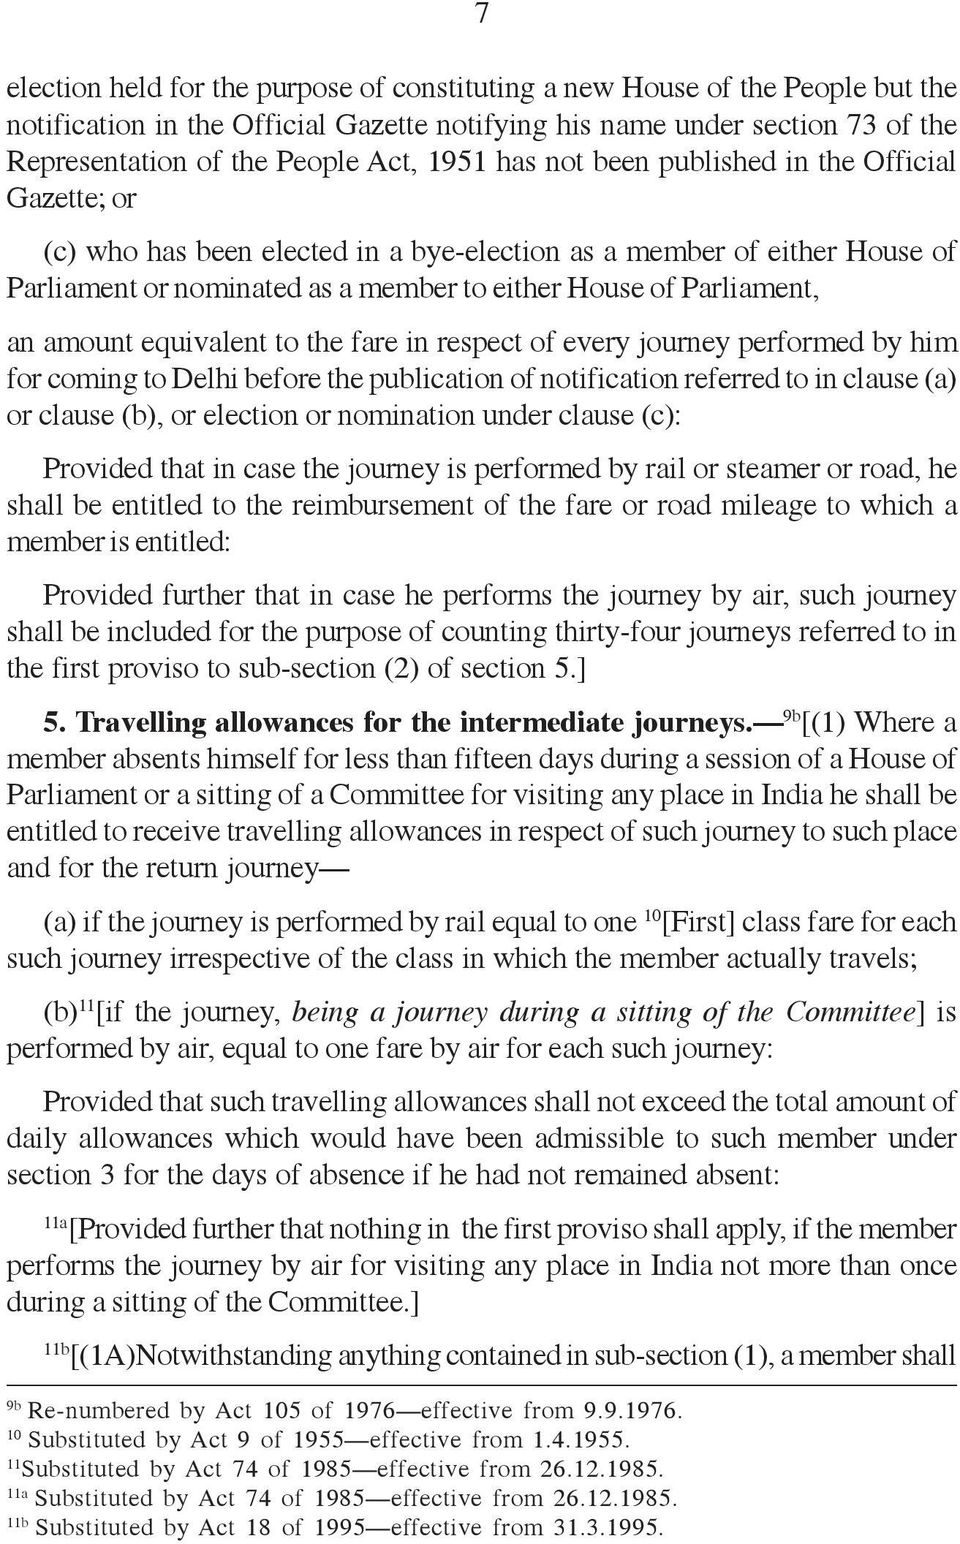 amount equivalent to the fare in respect of every journey performed by him for coming to Delhi before the publication of notification referred to in clause (a) or clause (b), or election or